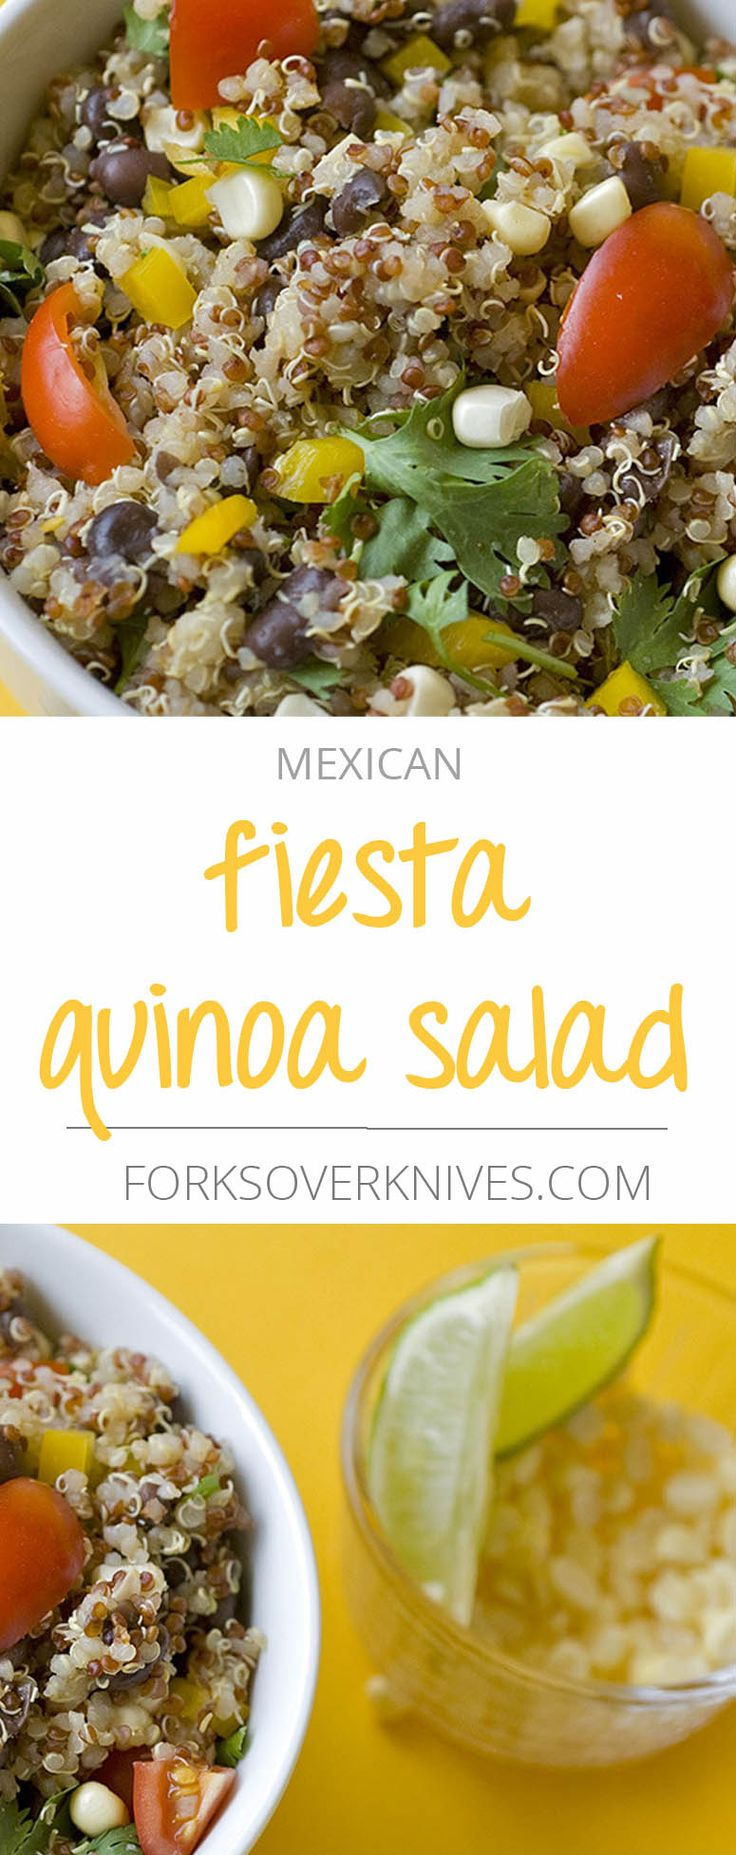 Now that summer has arrived my favorite quick-cooking grain to eat is quinoa. We use seasonal summer produce to make this salad nutrient-packed! This Mexican-inspired quinoa dish uses both regular and red quinoa for added texture and beauty. If you...  Read more